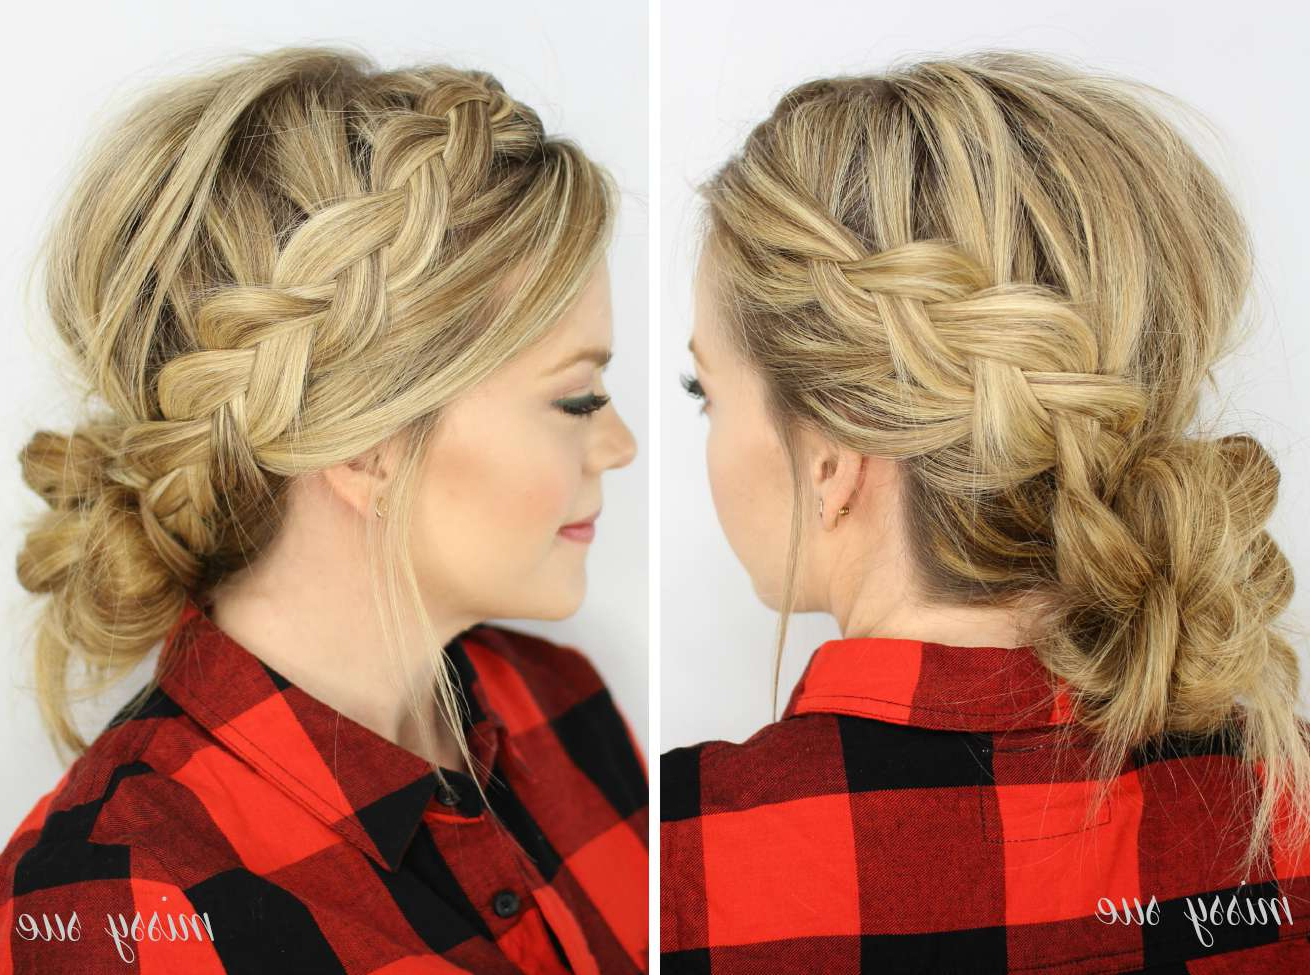 Best And Newest Mermaid Crown Braid Hairstyles With Braided Hairstyles For Weddings (View 18 of 20)